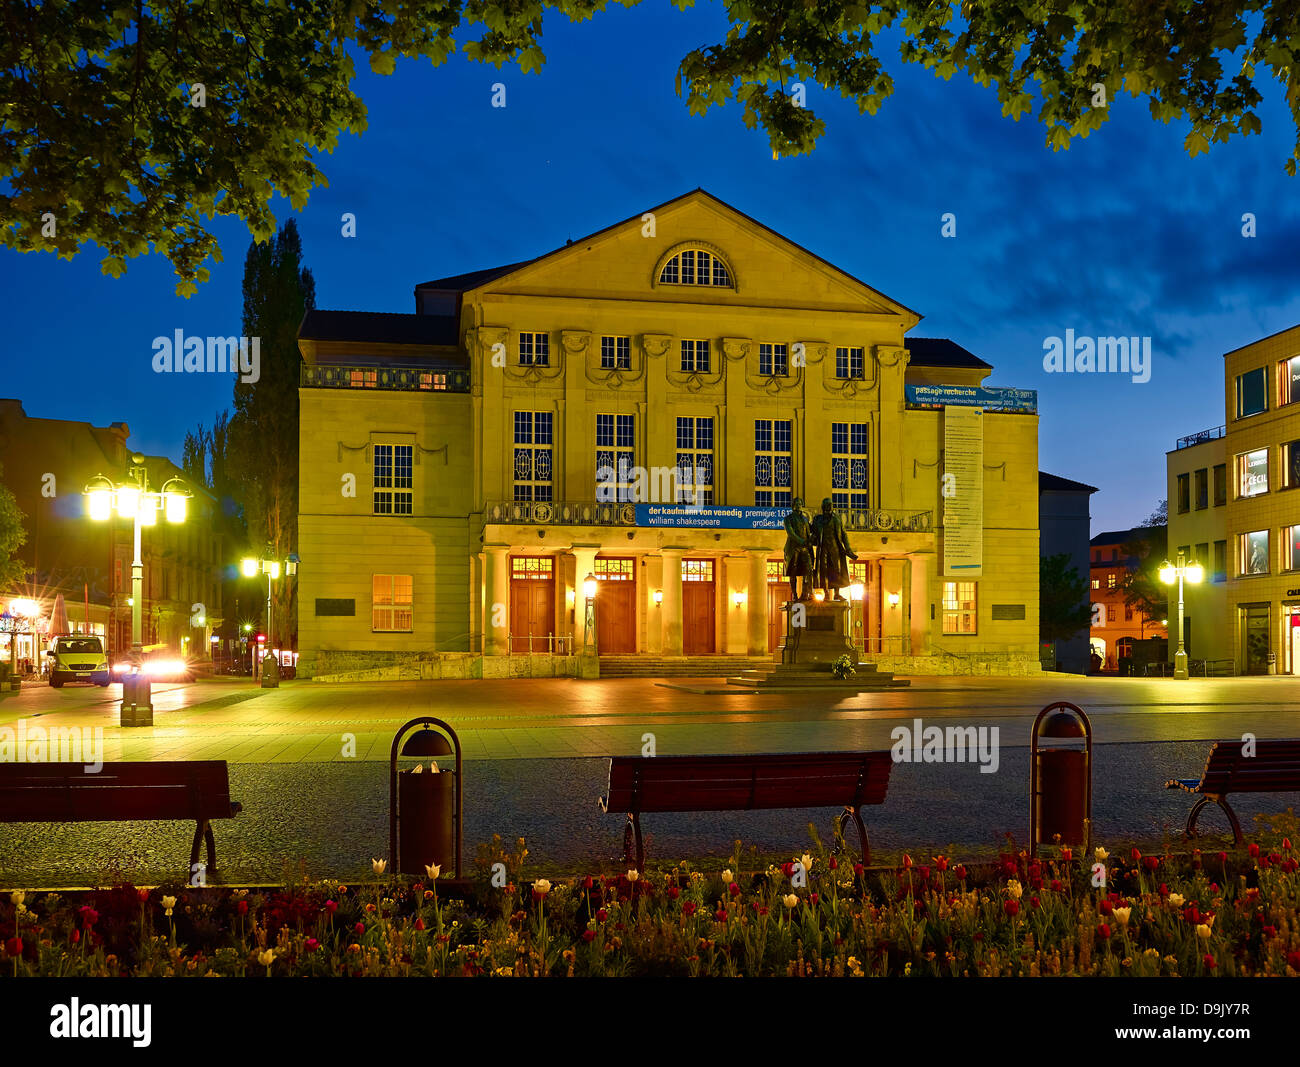 Deutsches Nationaltheater in Weimar with Goethe-Schiller Monument, Theatre Square, Weimar, Thuringia, Germany - Stock Image